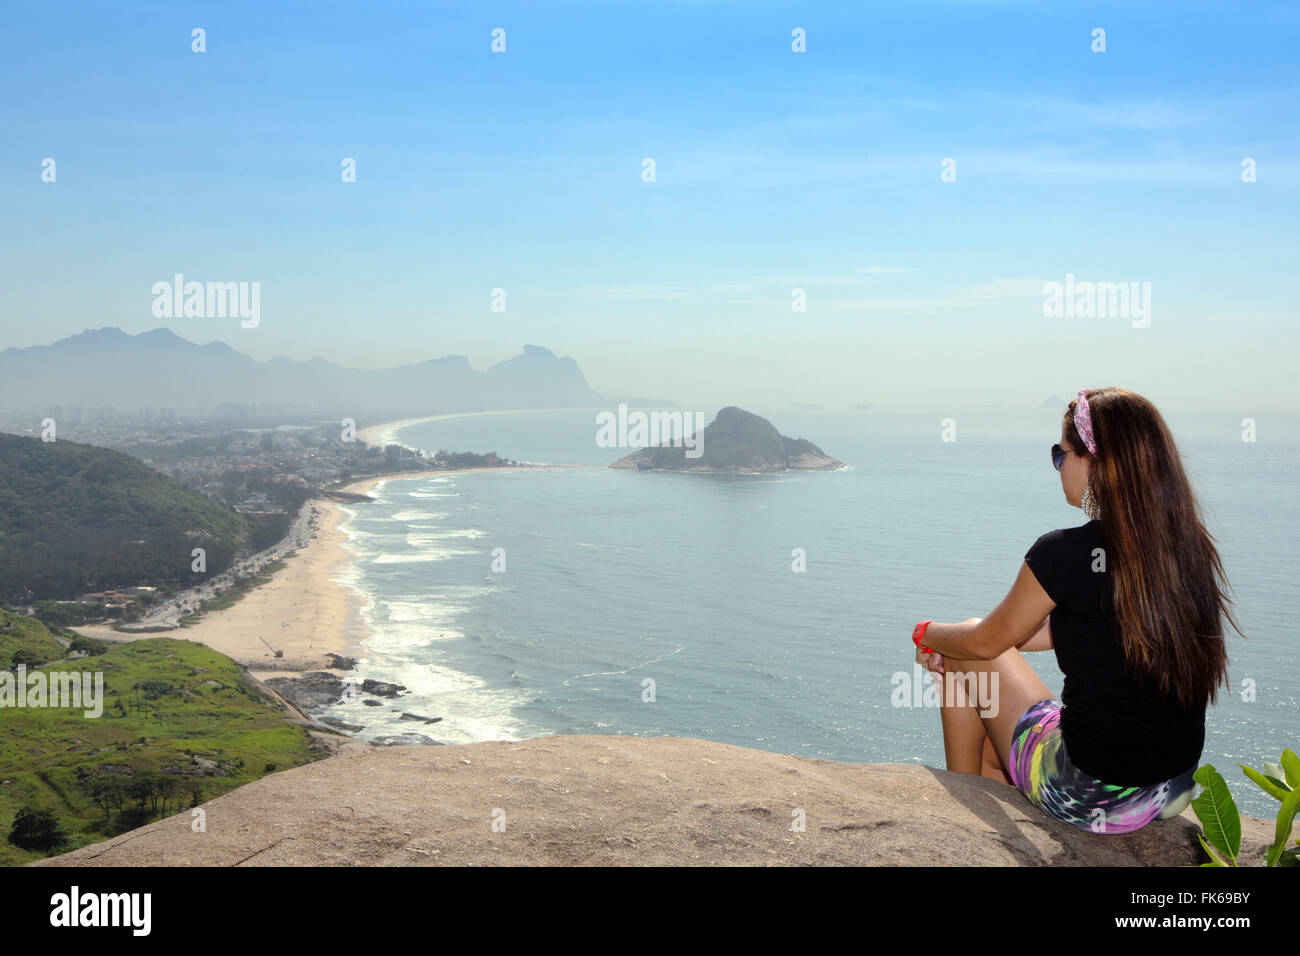 A hiker looking out from the viewpoint over Pontal and Recreio dos Bandeirantes beaches in Barra da Tijuca, Rio - Stock Image